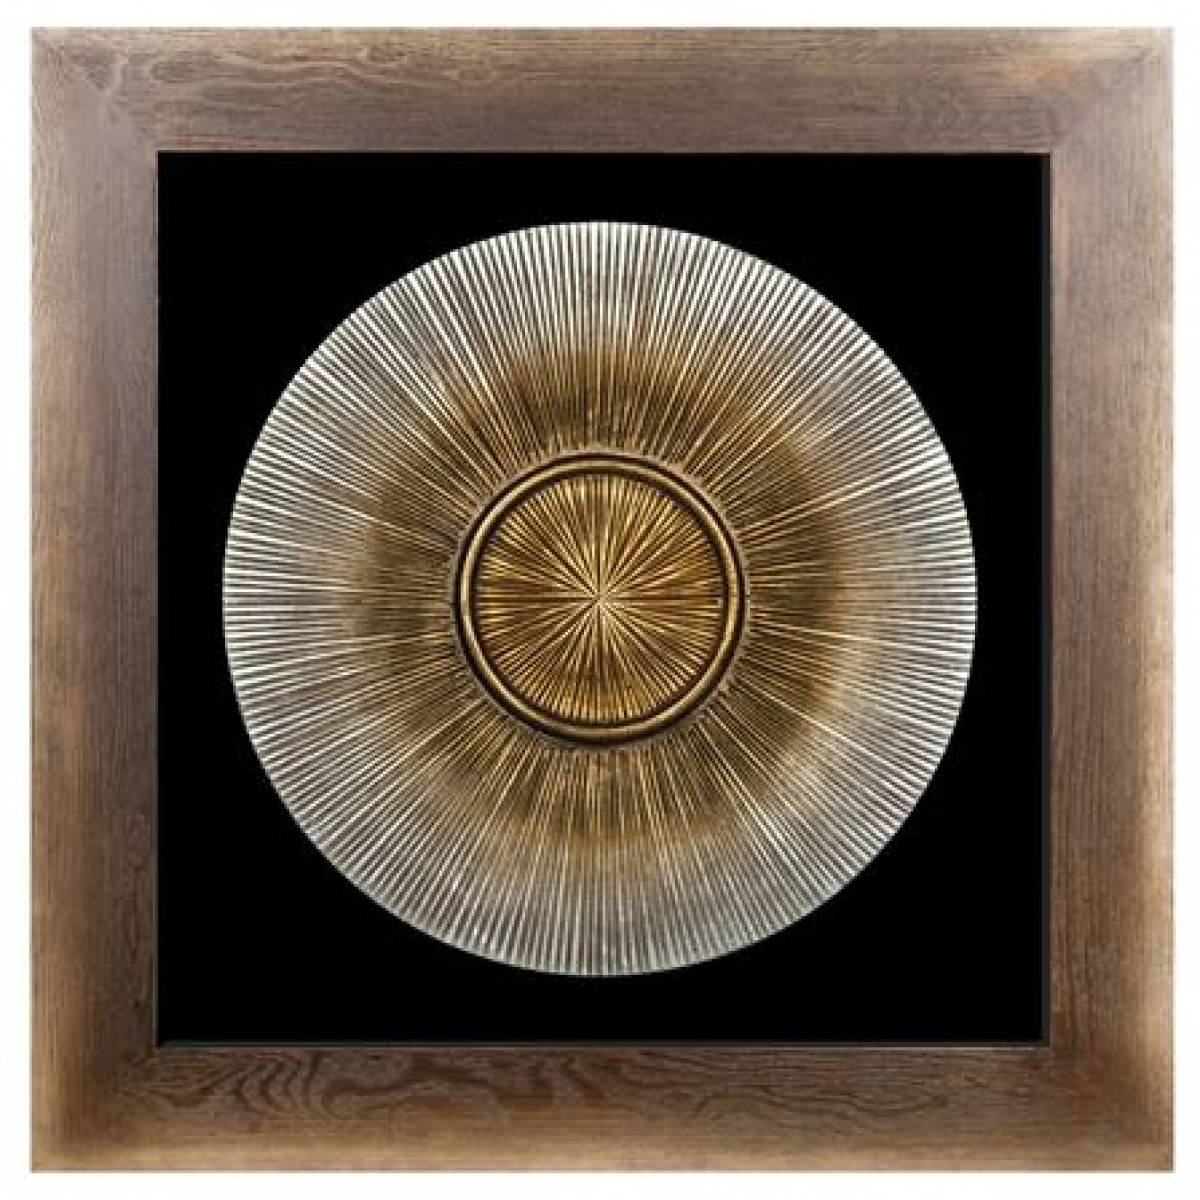 Wall Art Designs: Bronze Wall Art Sunburst Mirrored Silver Golden Intended For Best And Newest Bronze Metal Wall Art (View 11 of 20)